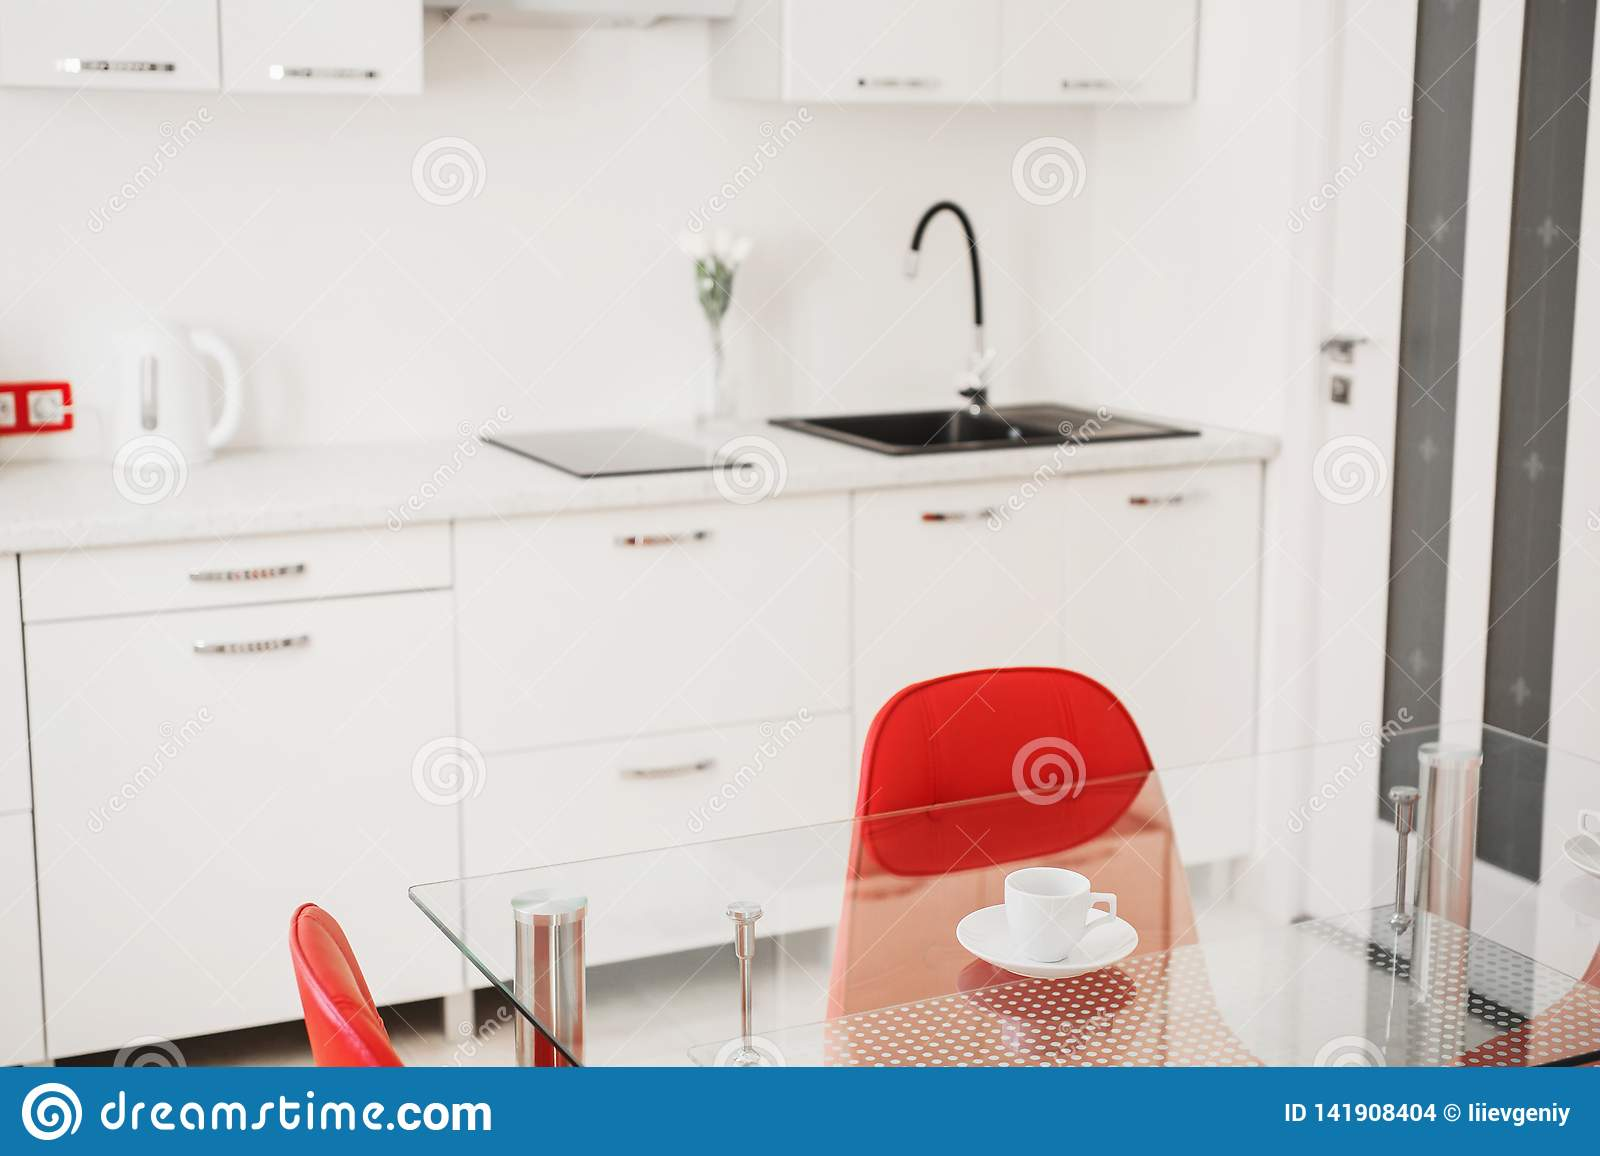 Fantastic Kitchen Table With Red Chair Modern Apartment Coffee Cup Bralicious Painted Fabric Chair Ideas Braliciousco